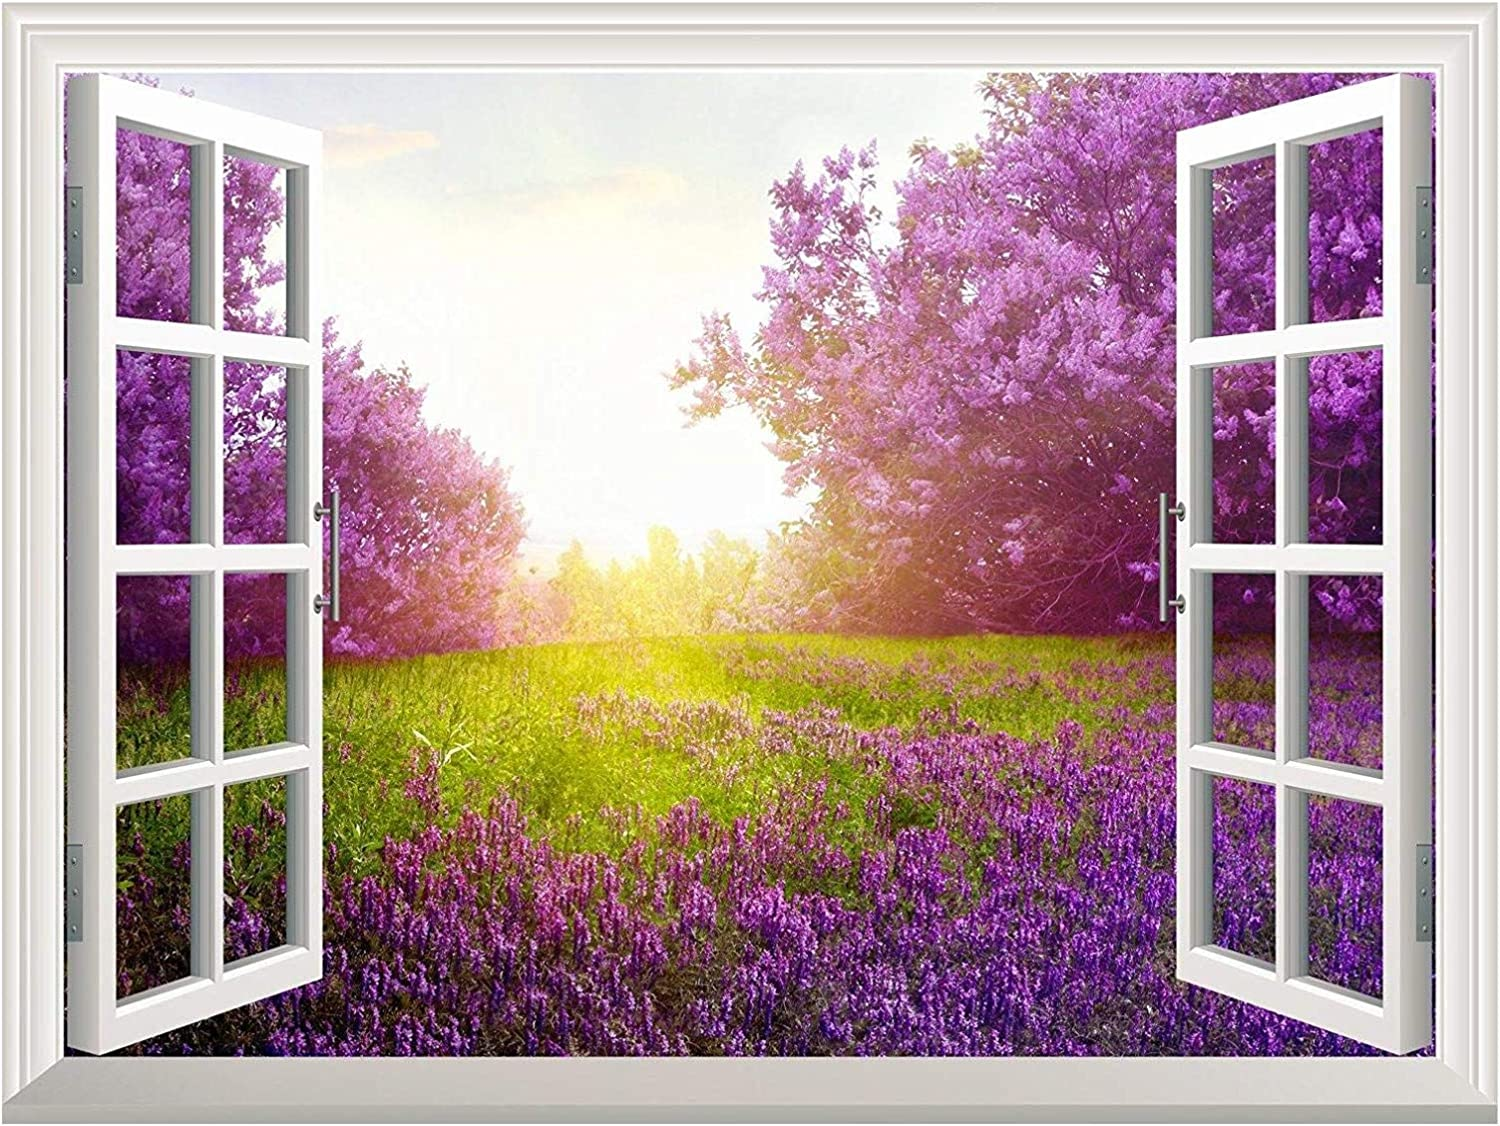 Lavender Landscape Window View Wall Stickers Art Decals Home Mural Decoration #